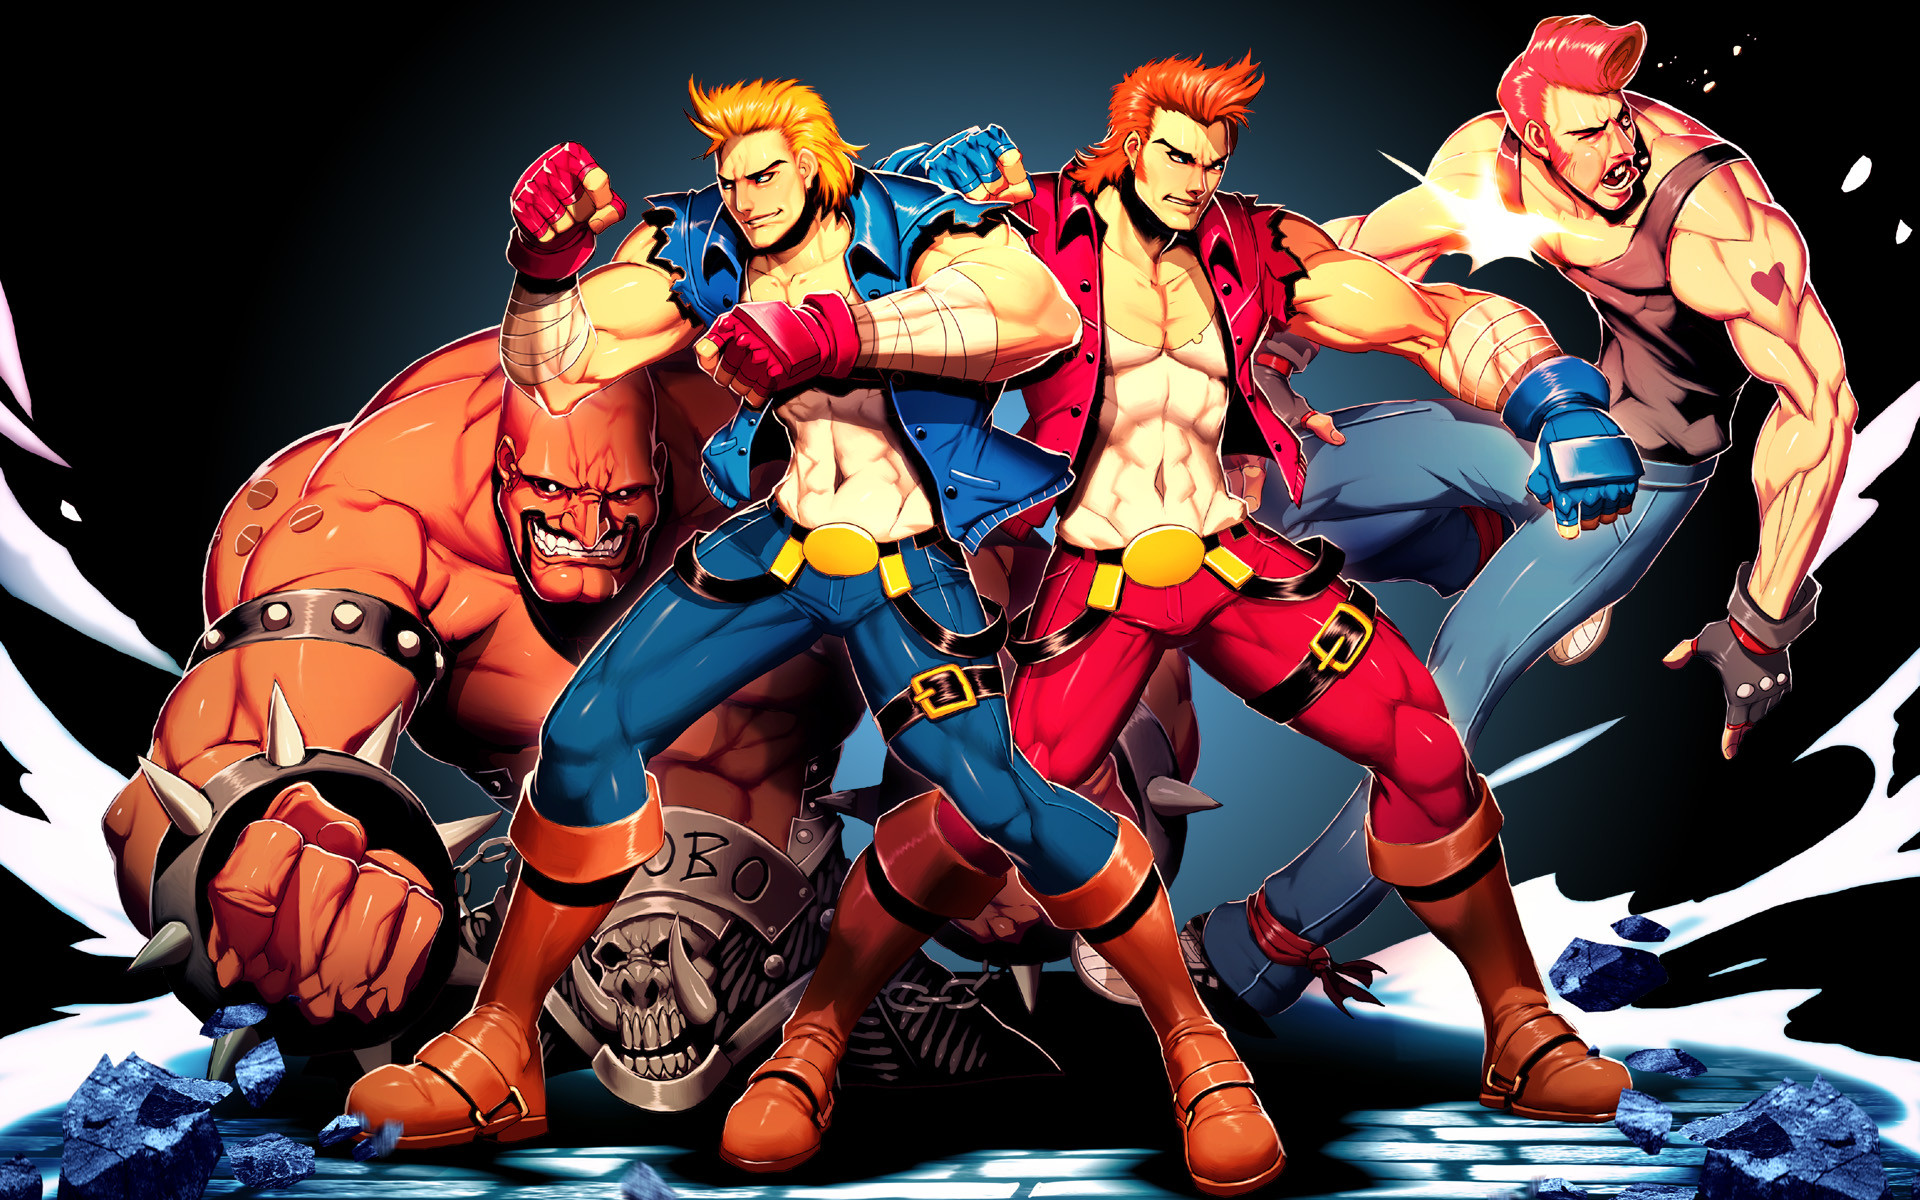 Res: 1920x1200, wallpaper #2 Wallpaper from Double Dragon: Neon